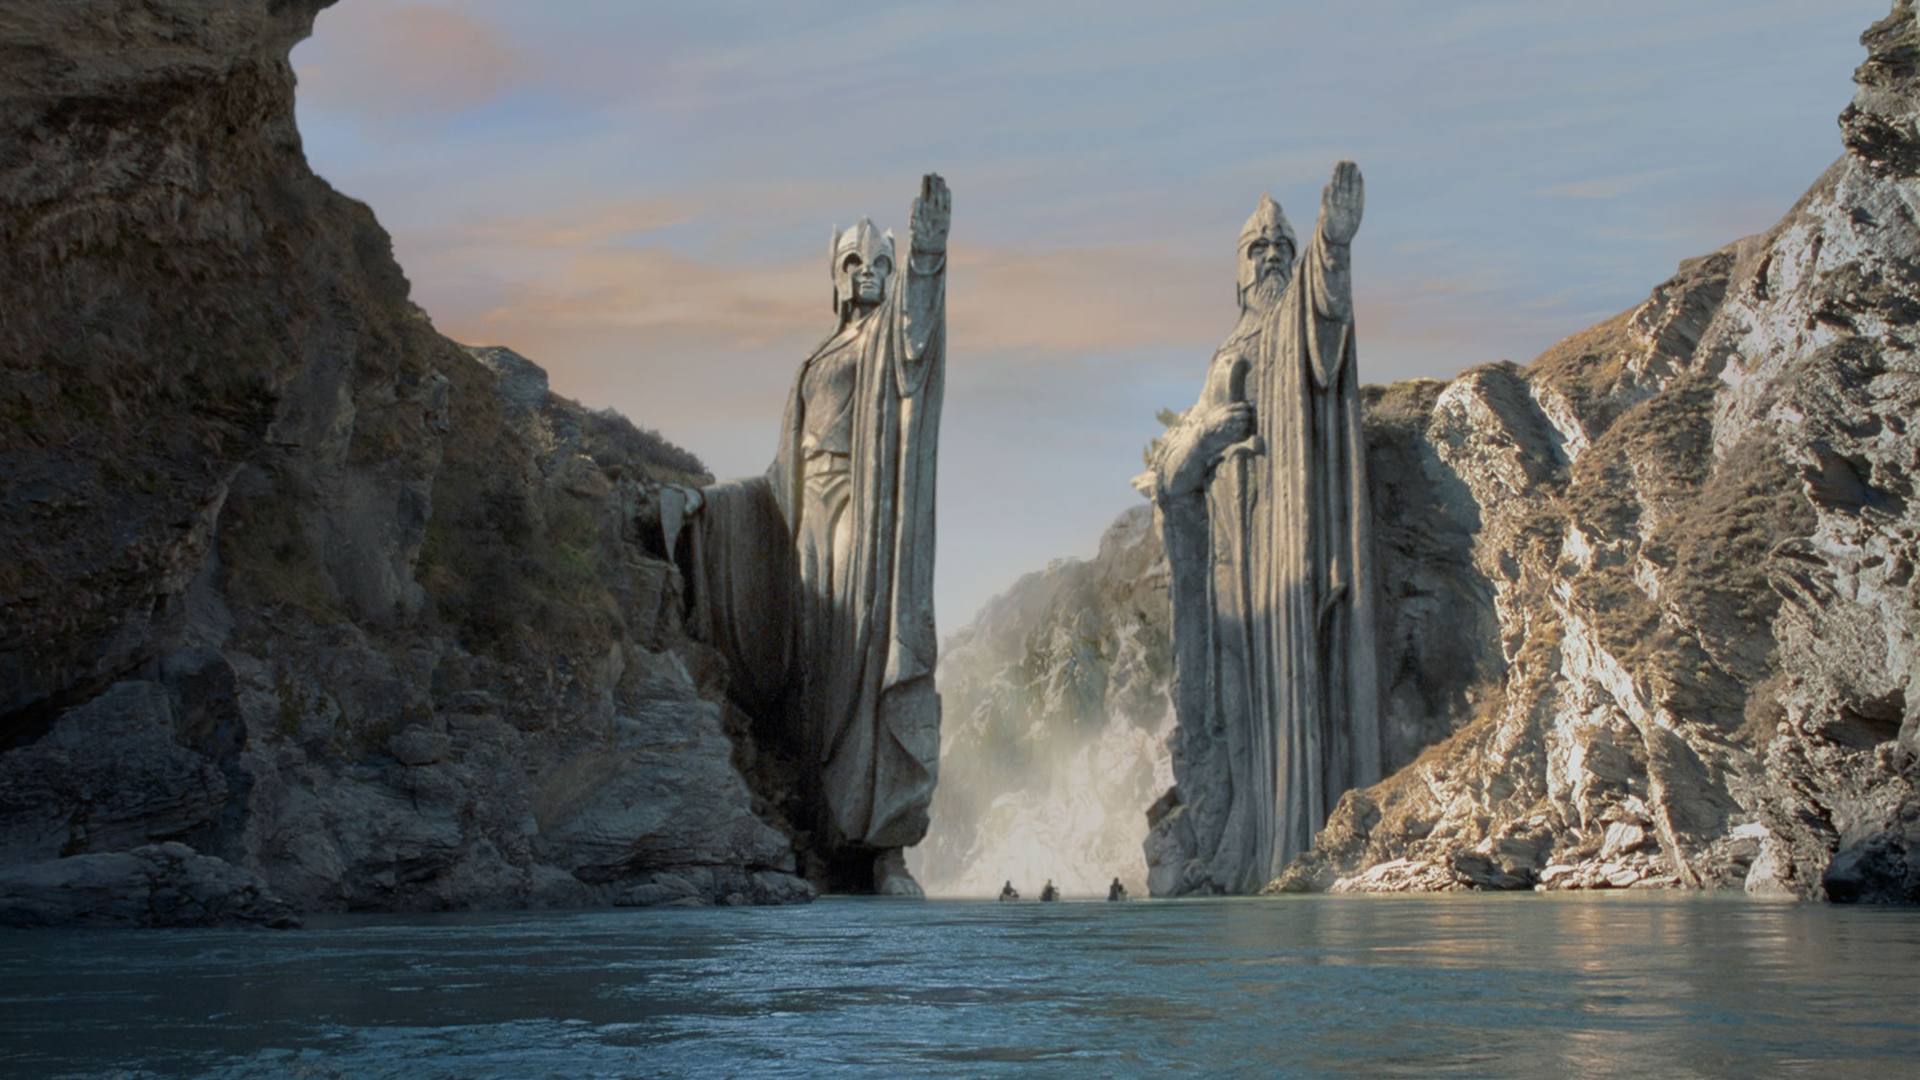 lord-of-the-rings-river-landscape